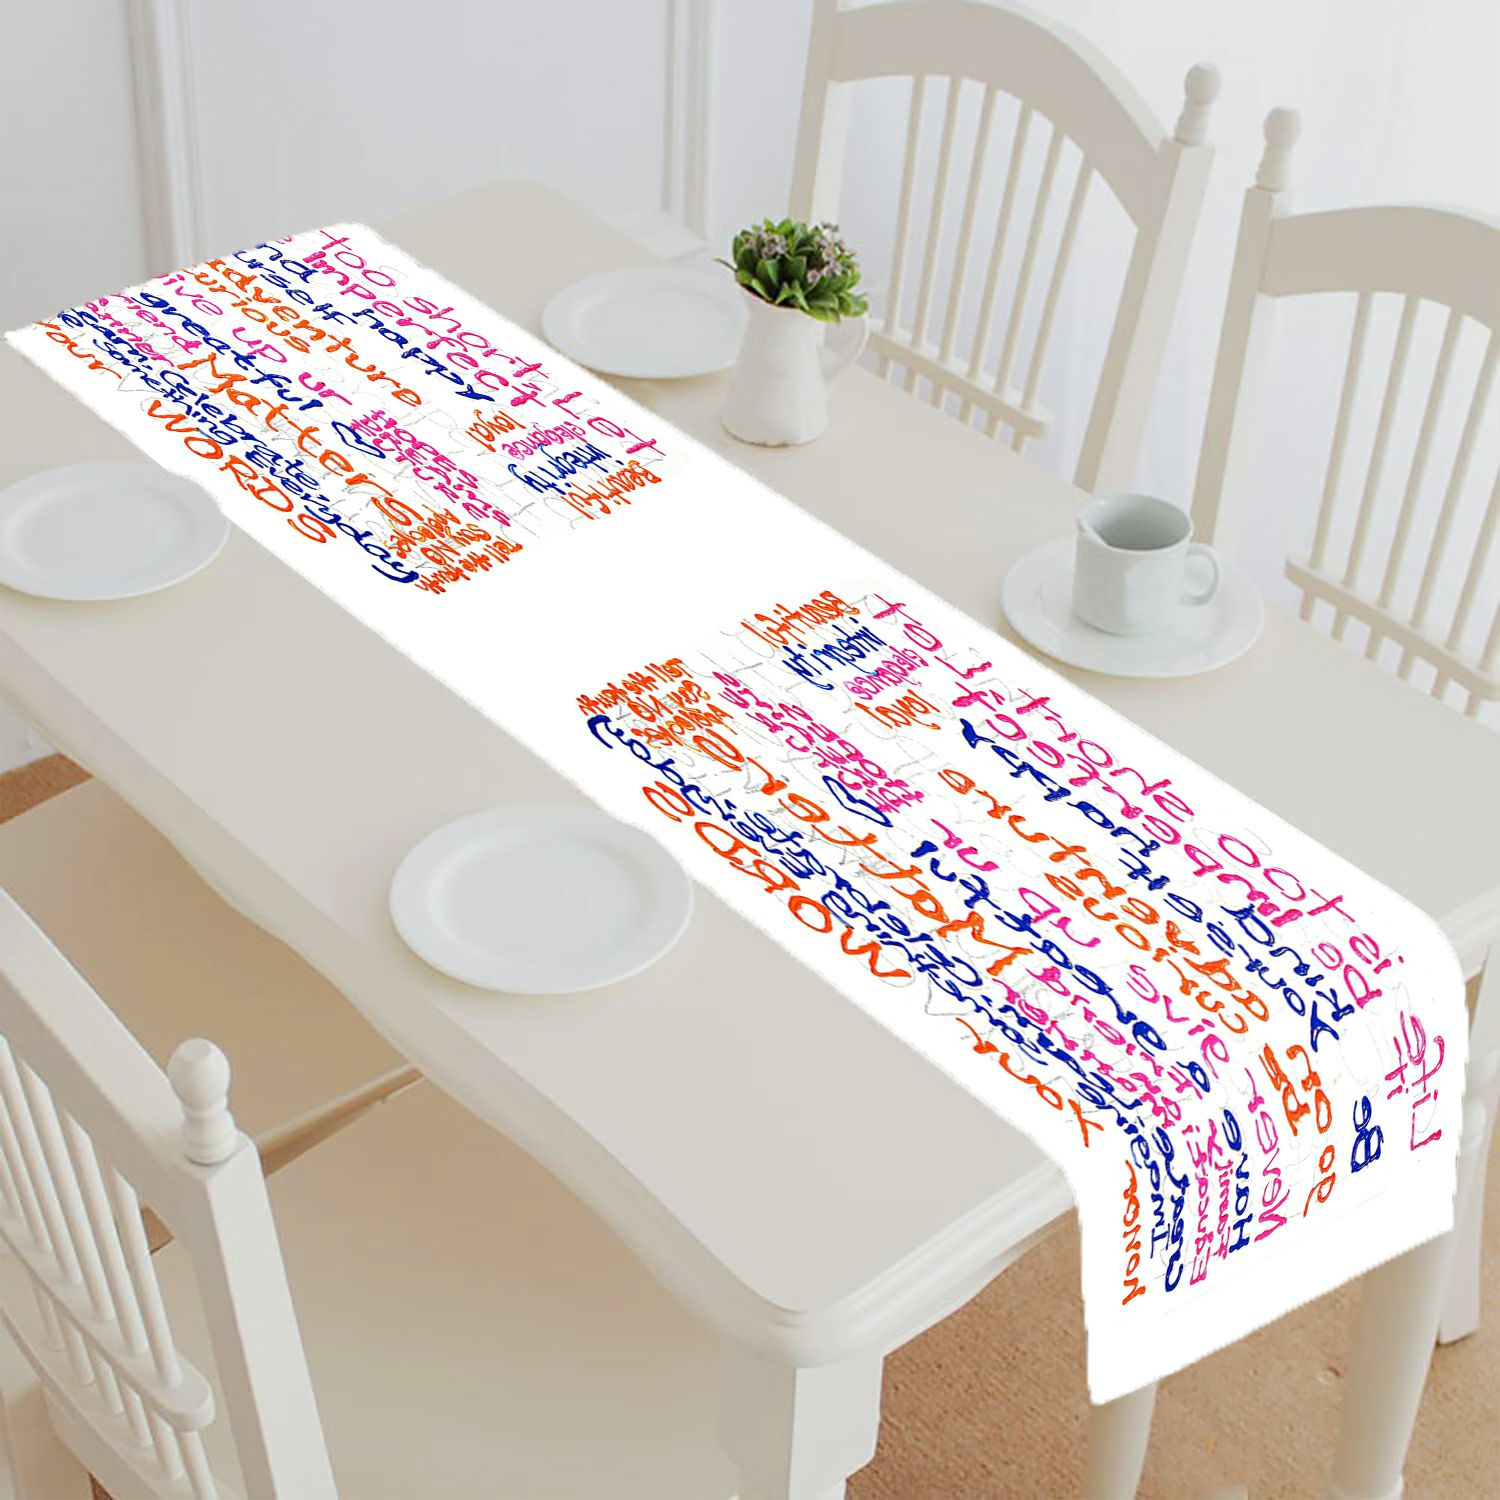 Abphqto Inspirational Quotes White Table Runner Placemat Tablecloth For Home Decor 16x72 Inch Walmart Com Walmart Com